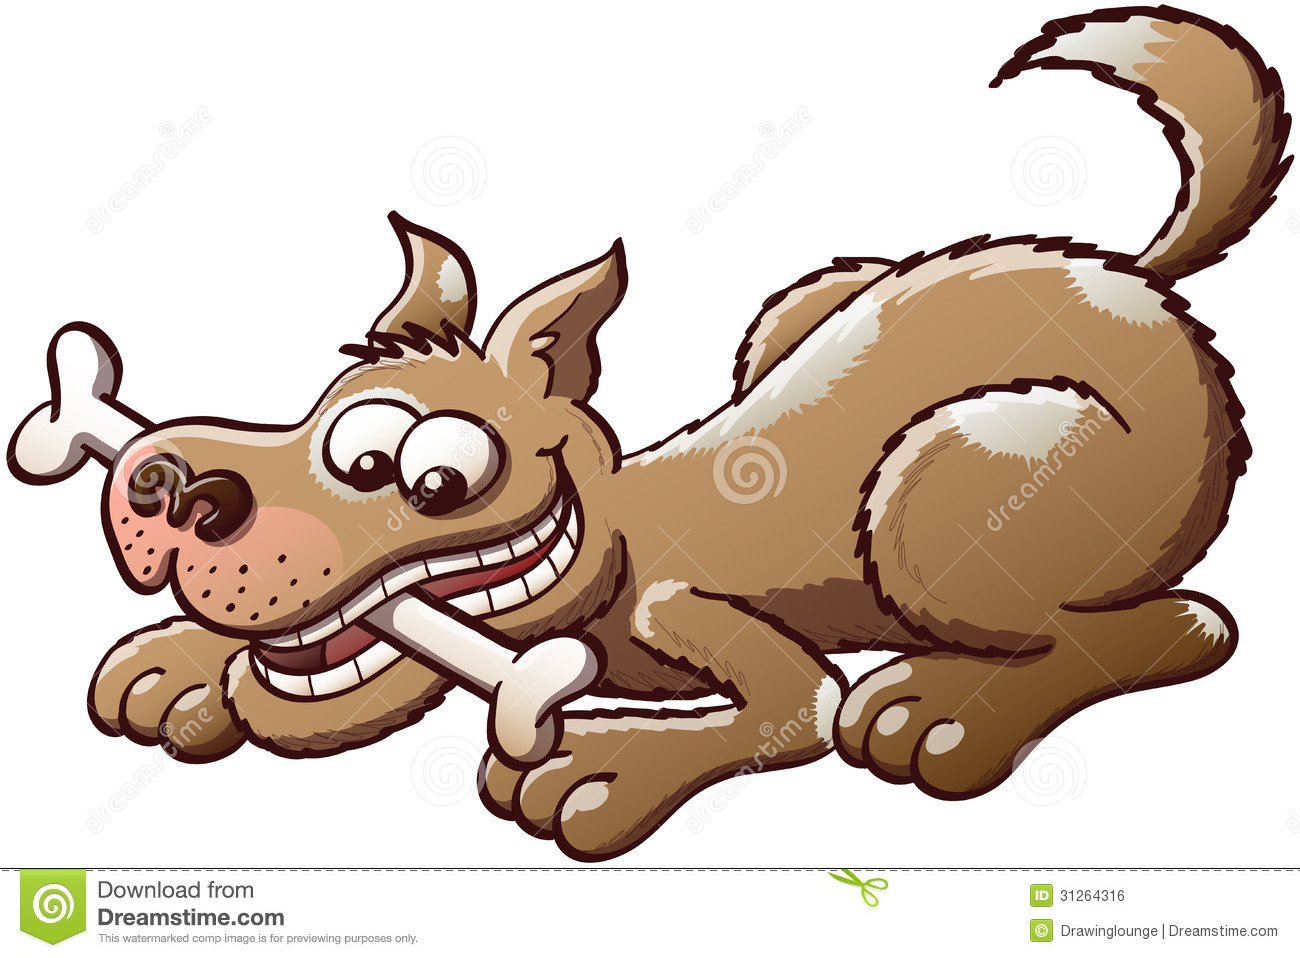 Dog biting tail clipart picture freeuse stock Happy Dog chewing A Bone Royalty Free Stock Image - Image: 31264316 picture freeuse stock